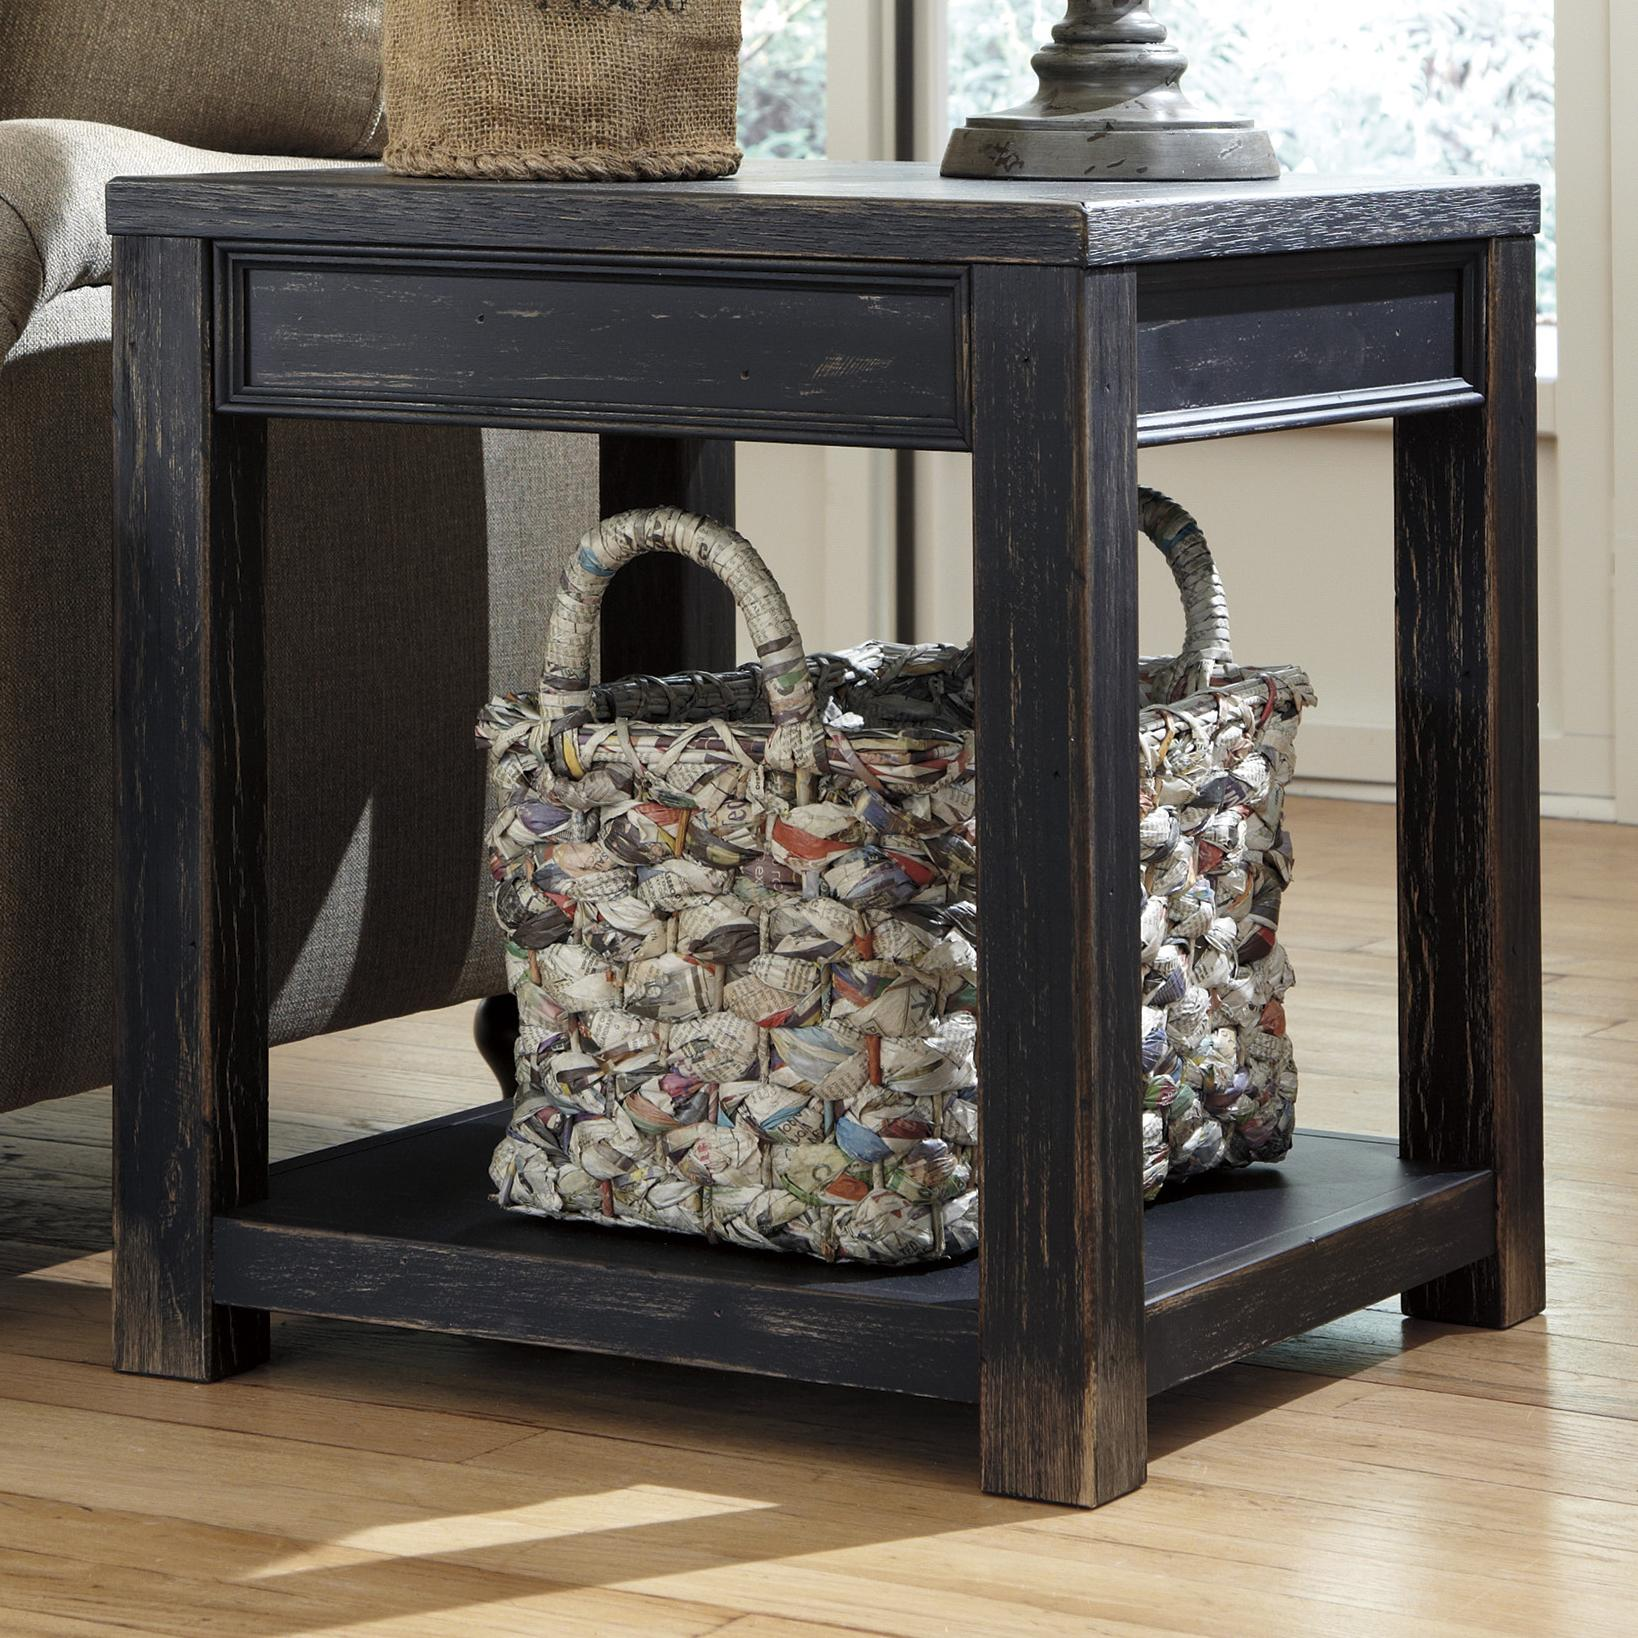 Gavelston Square End Table by Signature Design by Ashley at Beck's Furniture